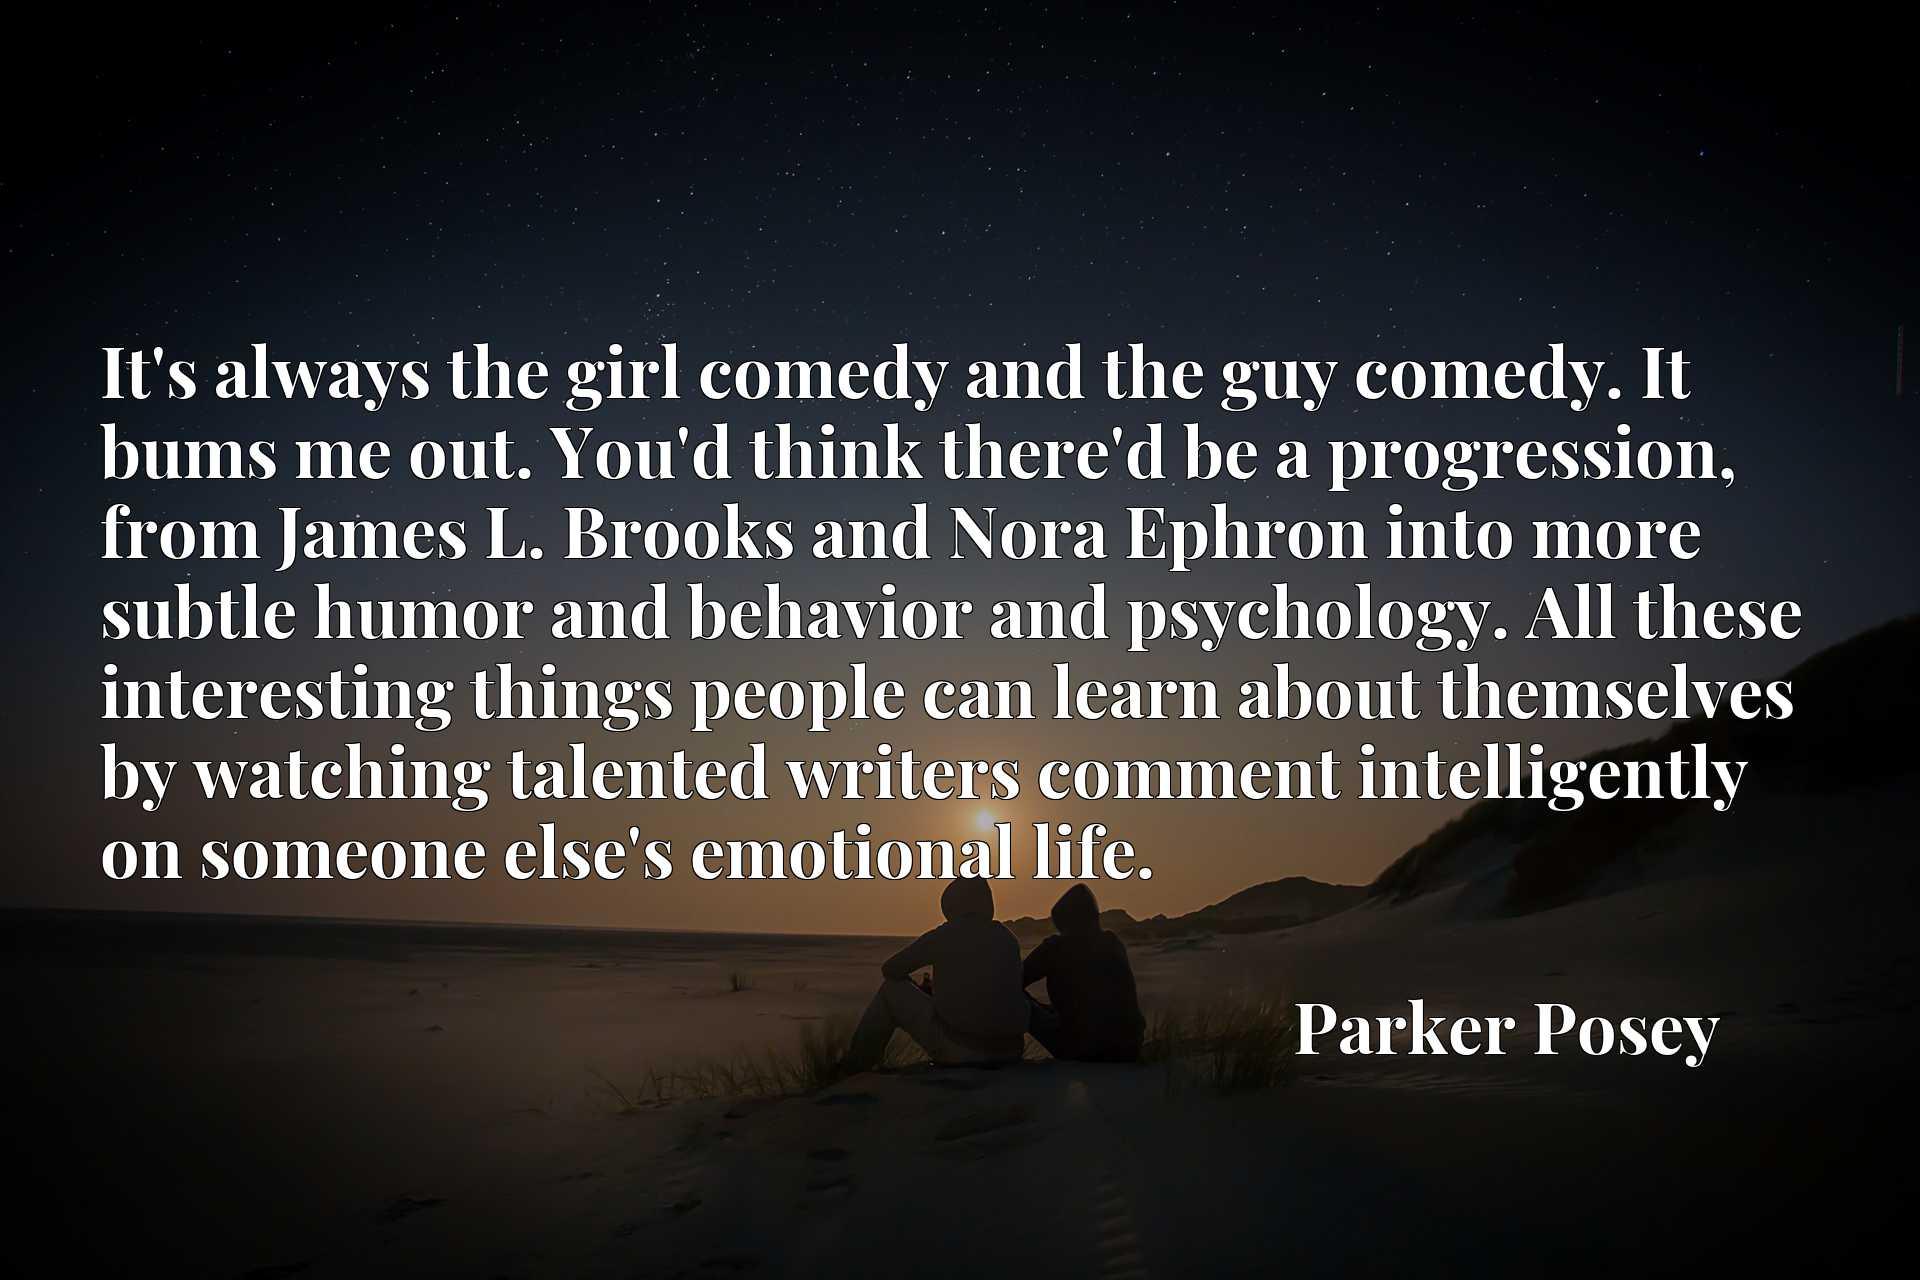 It's always the girl comedy and the guy comedy. It bums me out. You'd think there'd be a progression, from James L. Brooks and Nora Ephron into more subtle humor and behavior and psychology. All these interesting things people can learn about themselves by watching talented writers comment intelligently on someone else's emotional life.